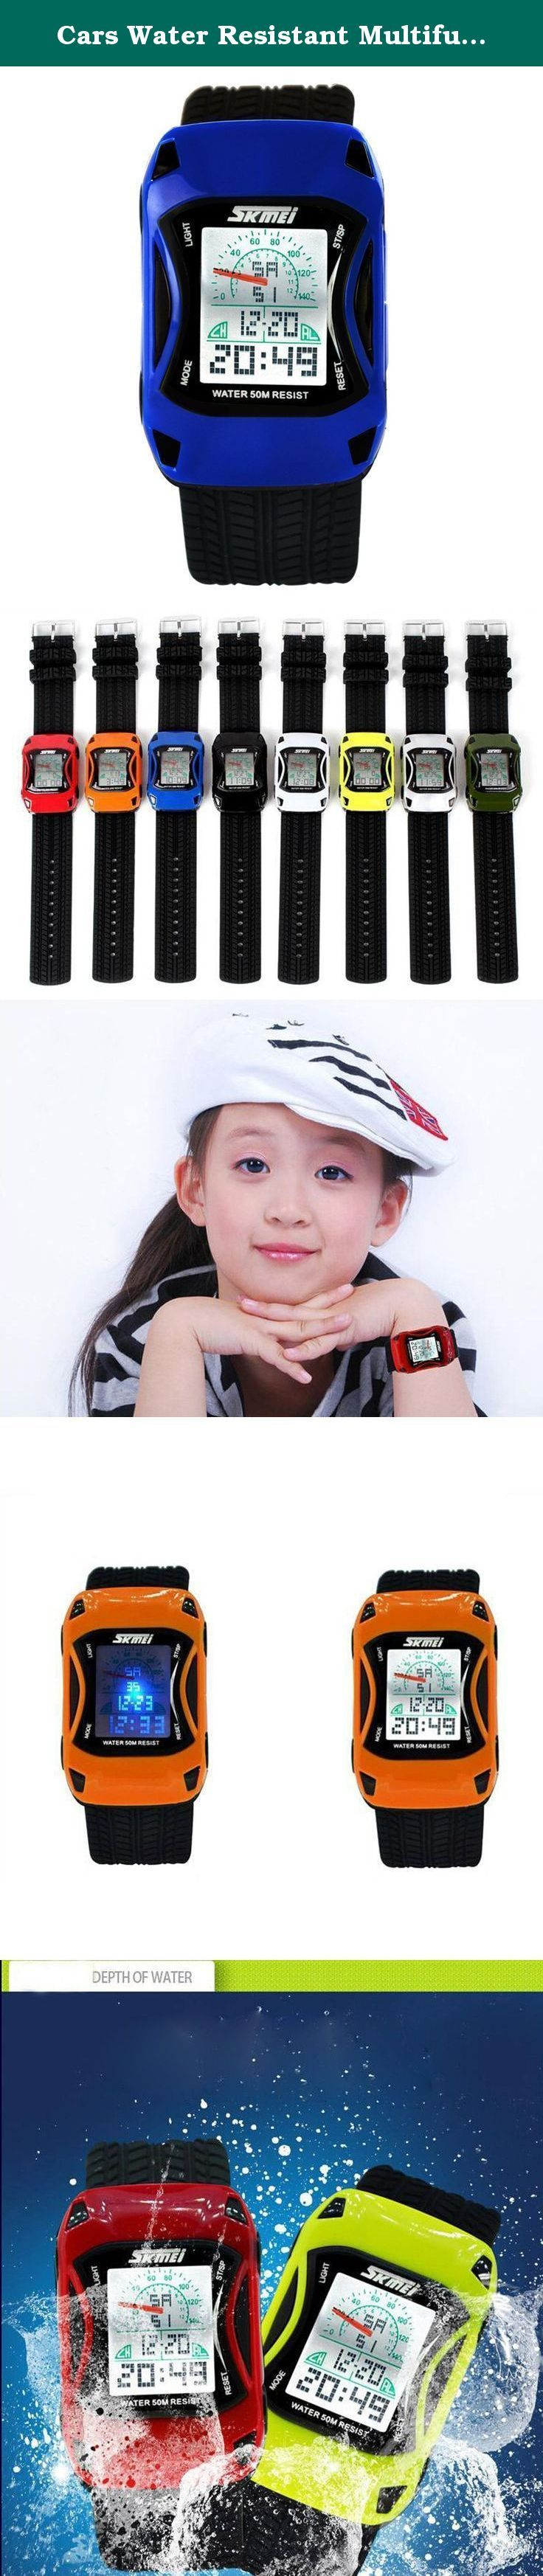 Cars Water Resistant Multifunction Climbing Dive LCD Digital Watches Child's Wristwatch- Blue. A variety of styles you can choose in our store ! Package Included: 1 x Watch Please Note: 1. Actual color may vary from picture due to computer settings. 2. Find store front of Sunny world, more surprises are waiting for you! Dear Buyer, Thanks for your continuous support to our store, and we are always striving to improve ourselves in terms of service, quality, sourcing, etc. It would be…